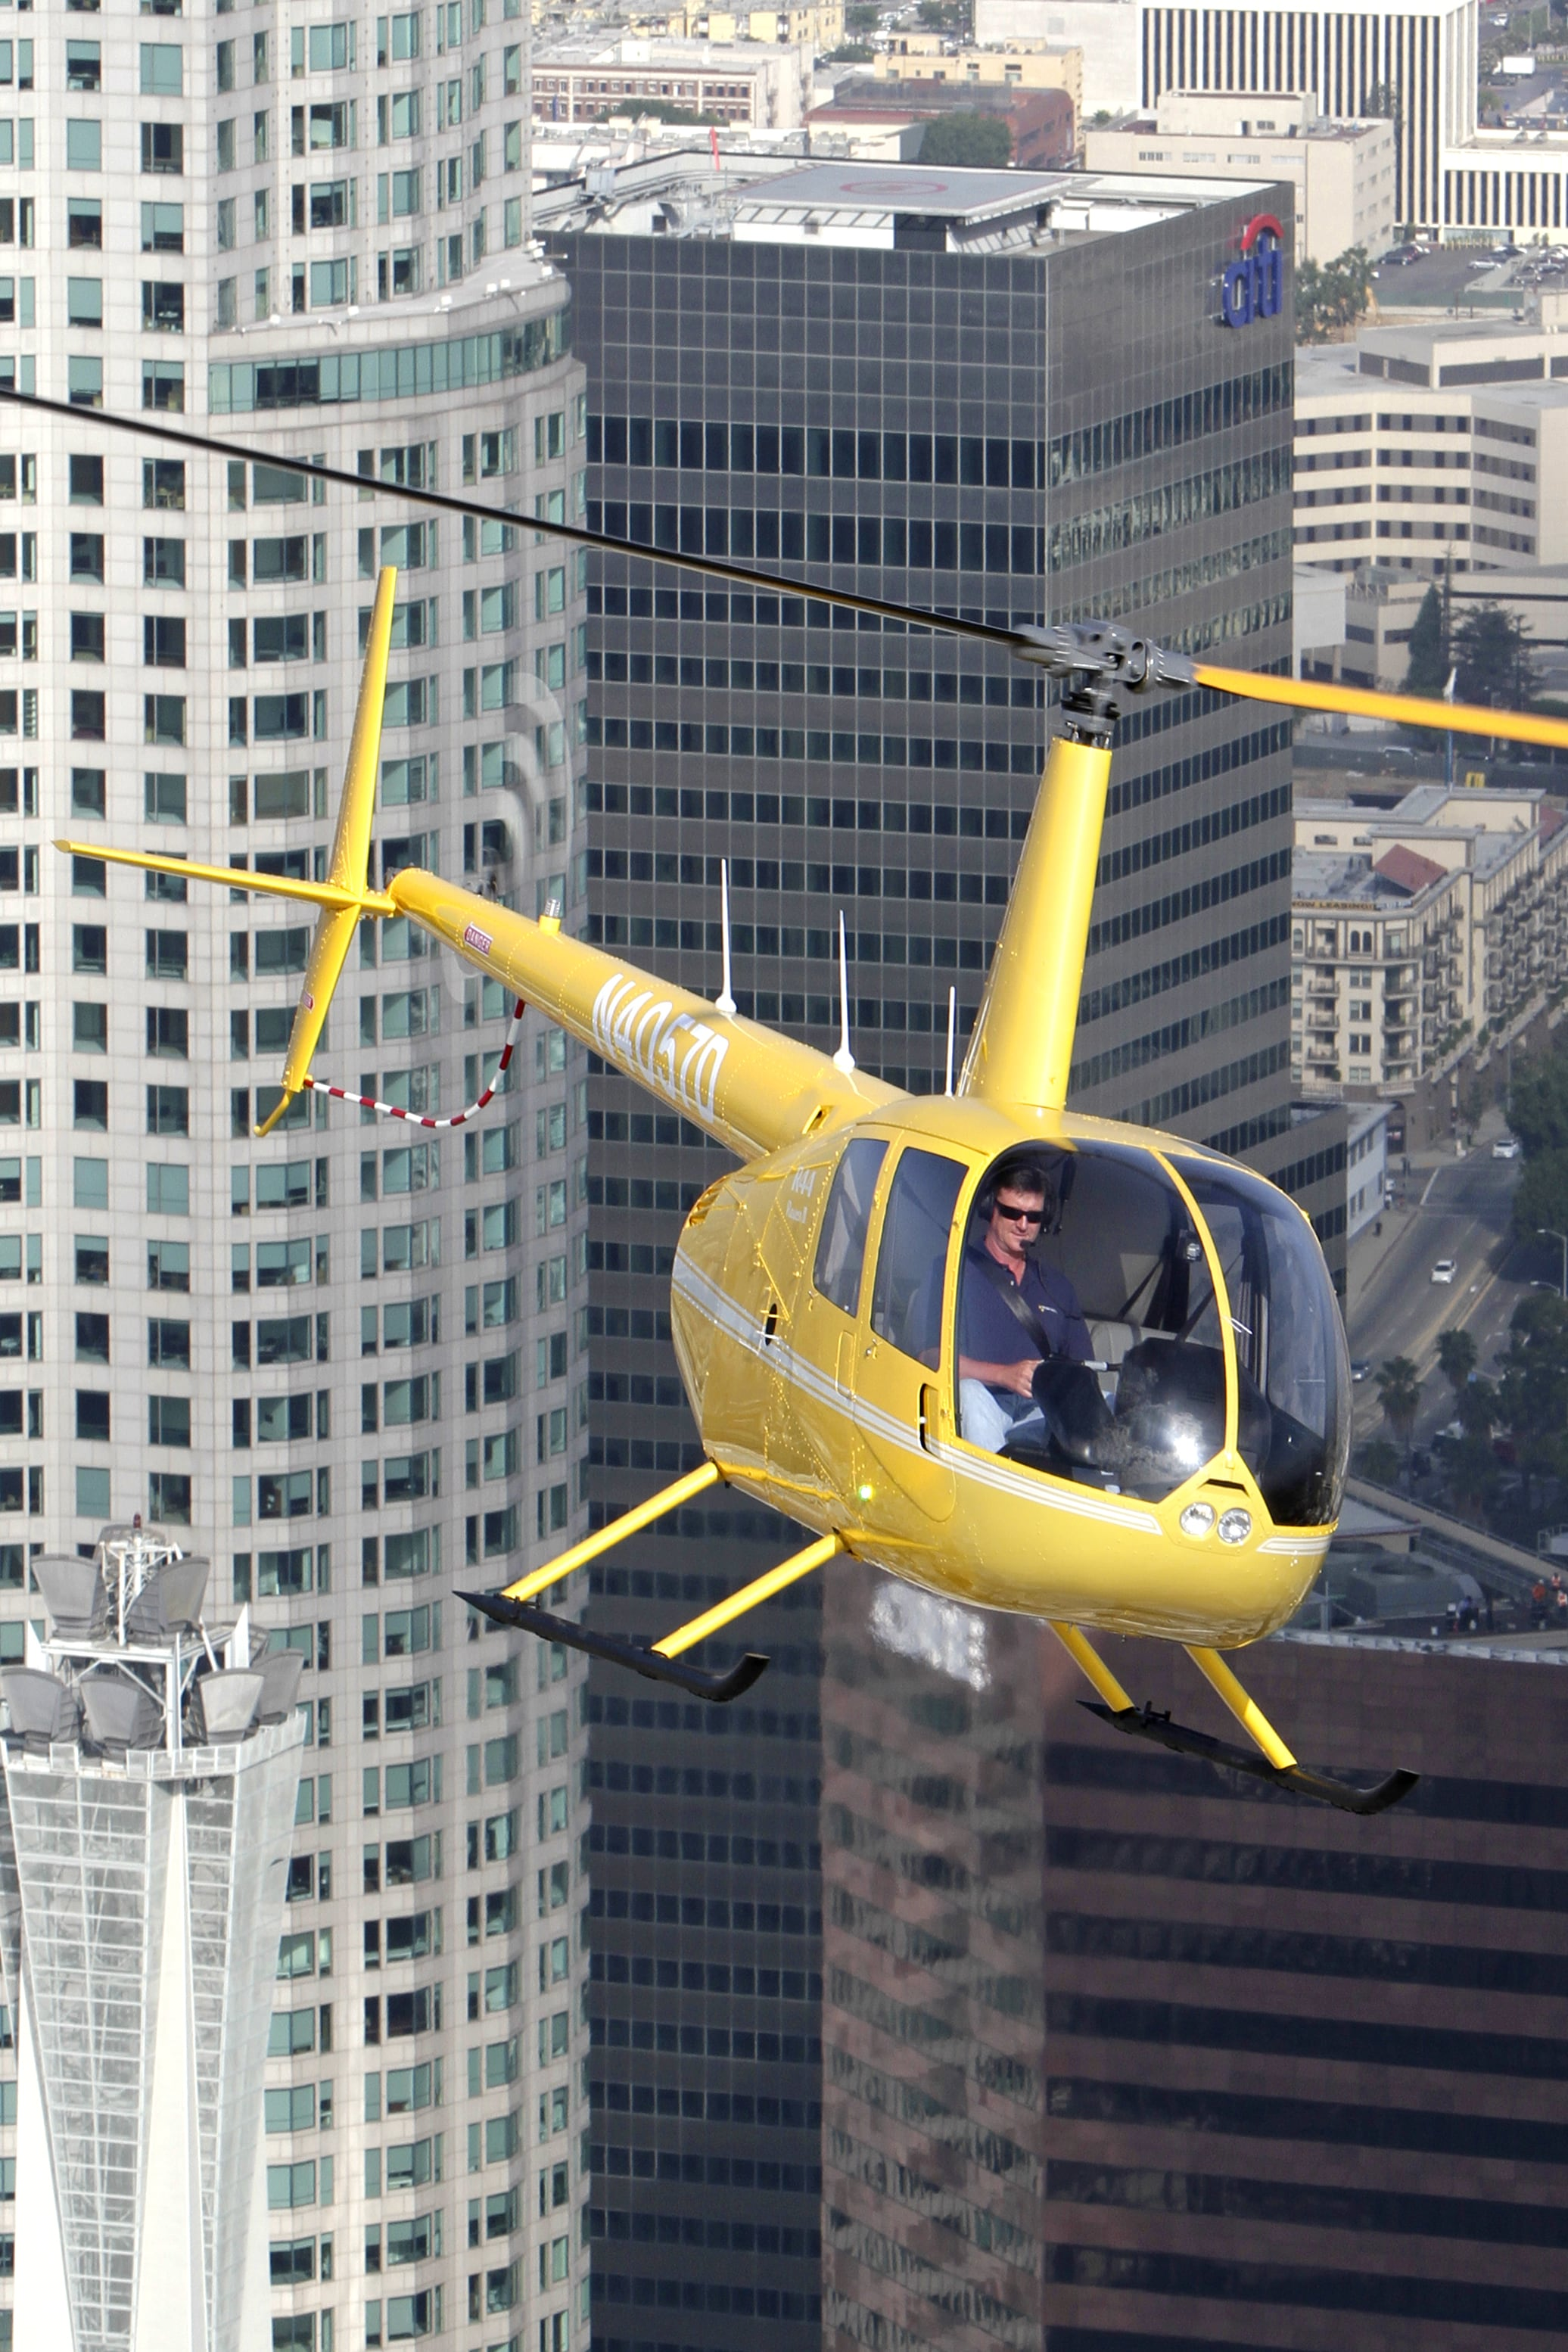 R44 yellow front buildings image